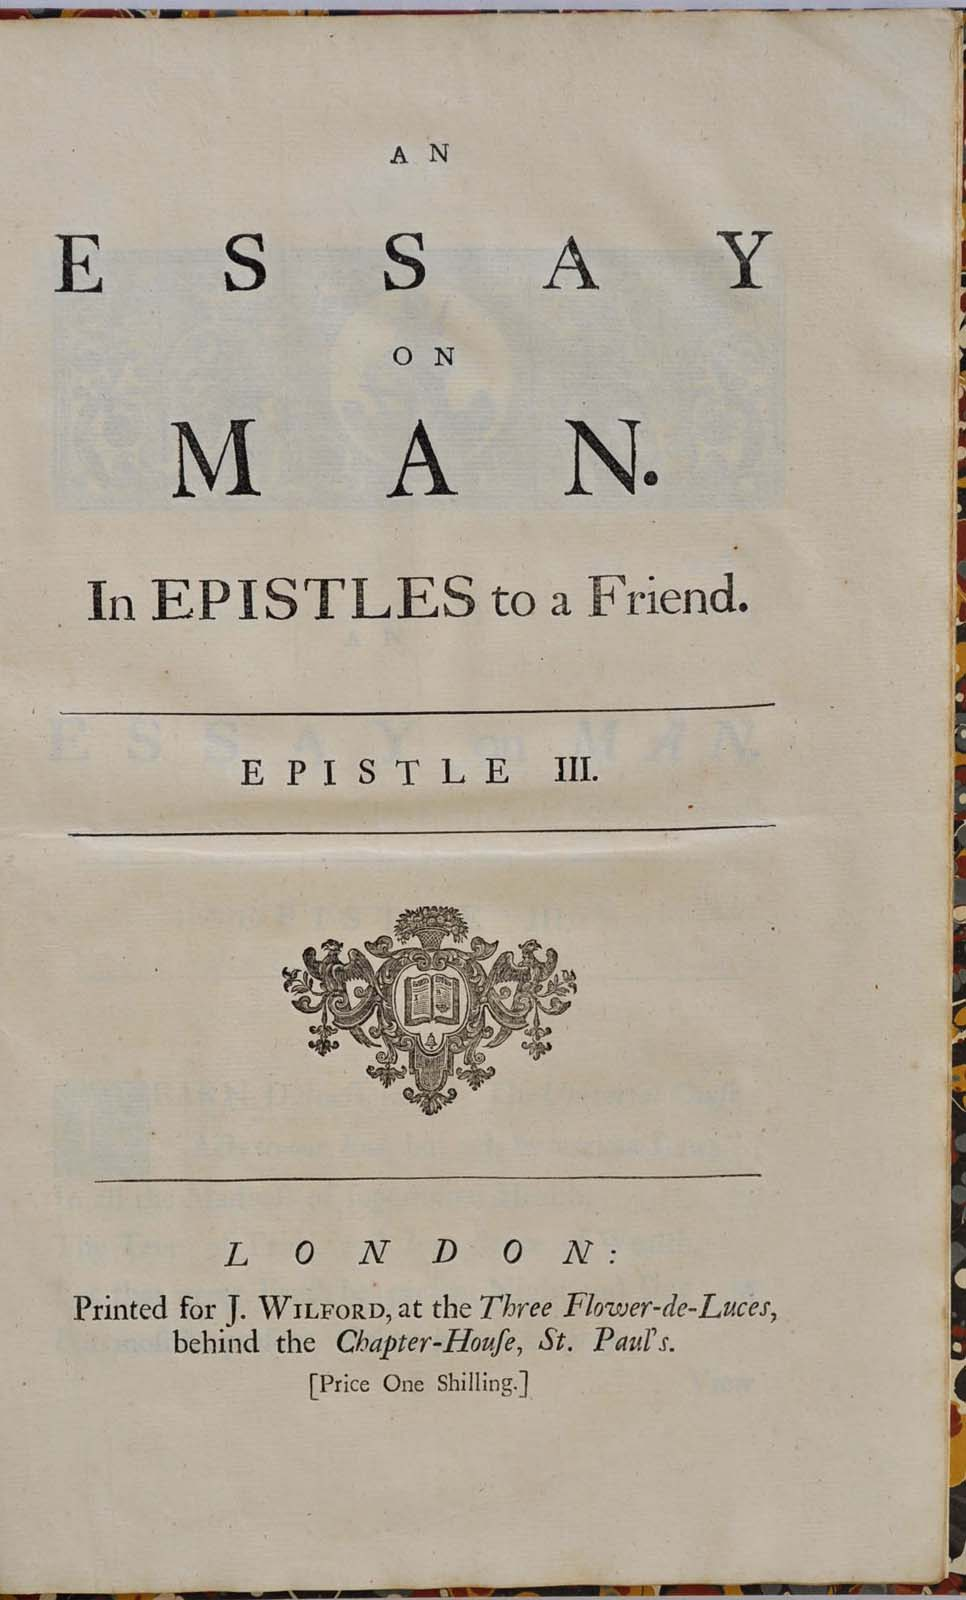 an essay on man an essay on man in epistles to a friend epistle  an essay on man in epistles to a friend epistle i ii iii and iv